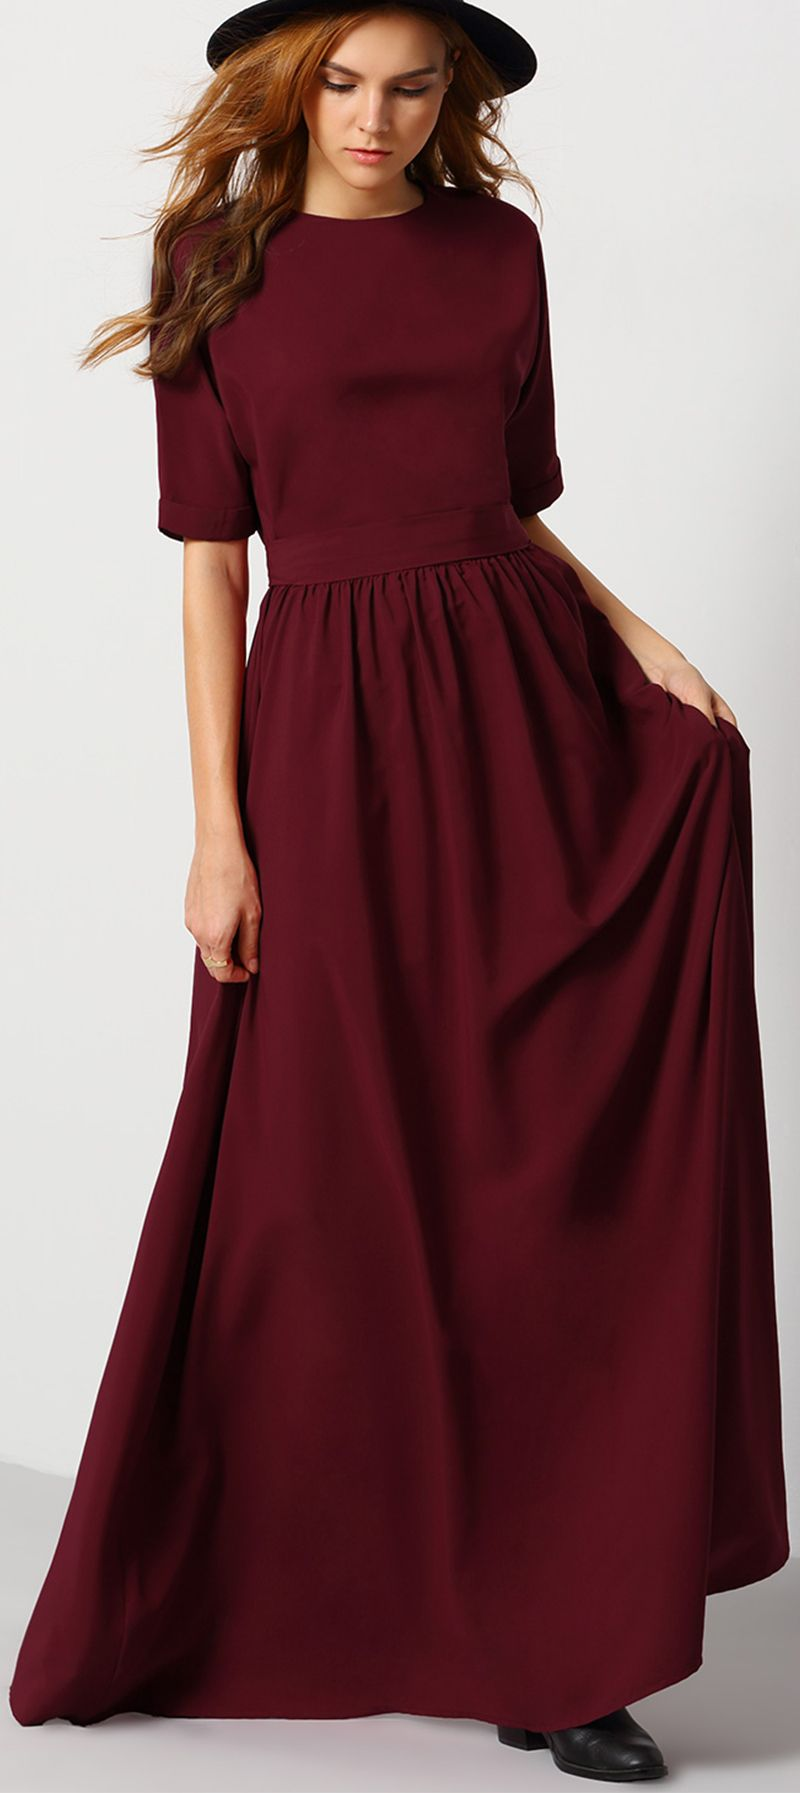 b444cb6f14 Occasion & Party Dresses - Burgundy Round Neck Maxi Dress- SheIn.com ...